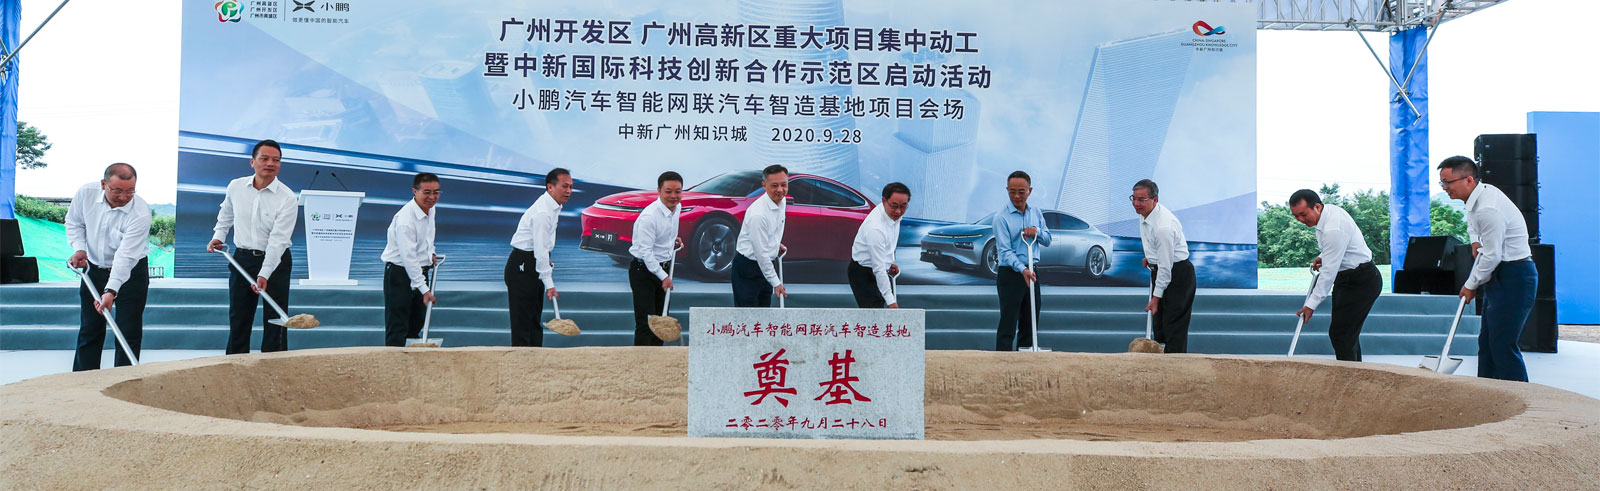 XPeng will build a second EV plant, secures a CNY 4 billion investment from Guangzhou GET Investment